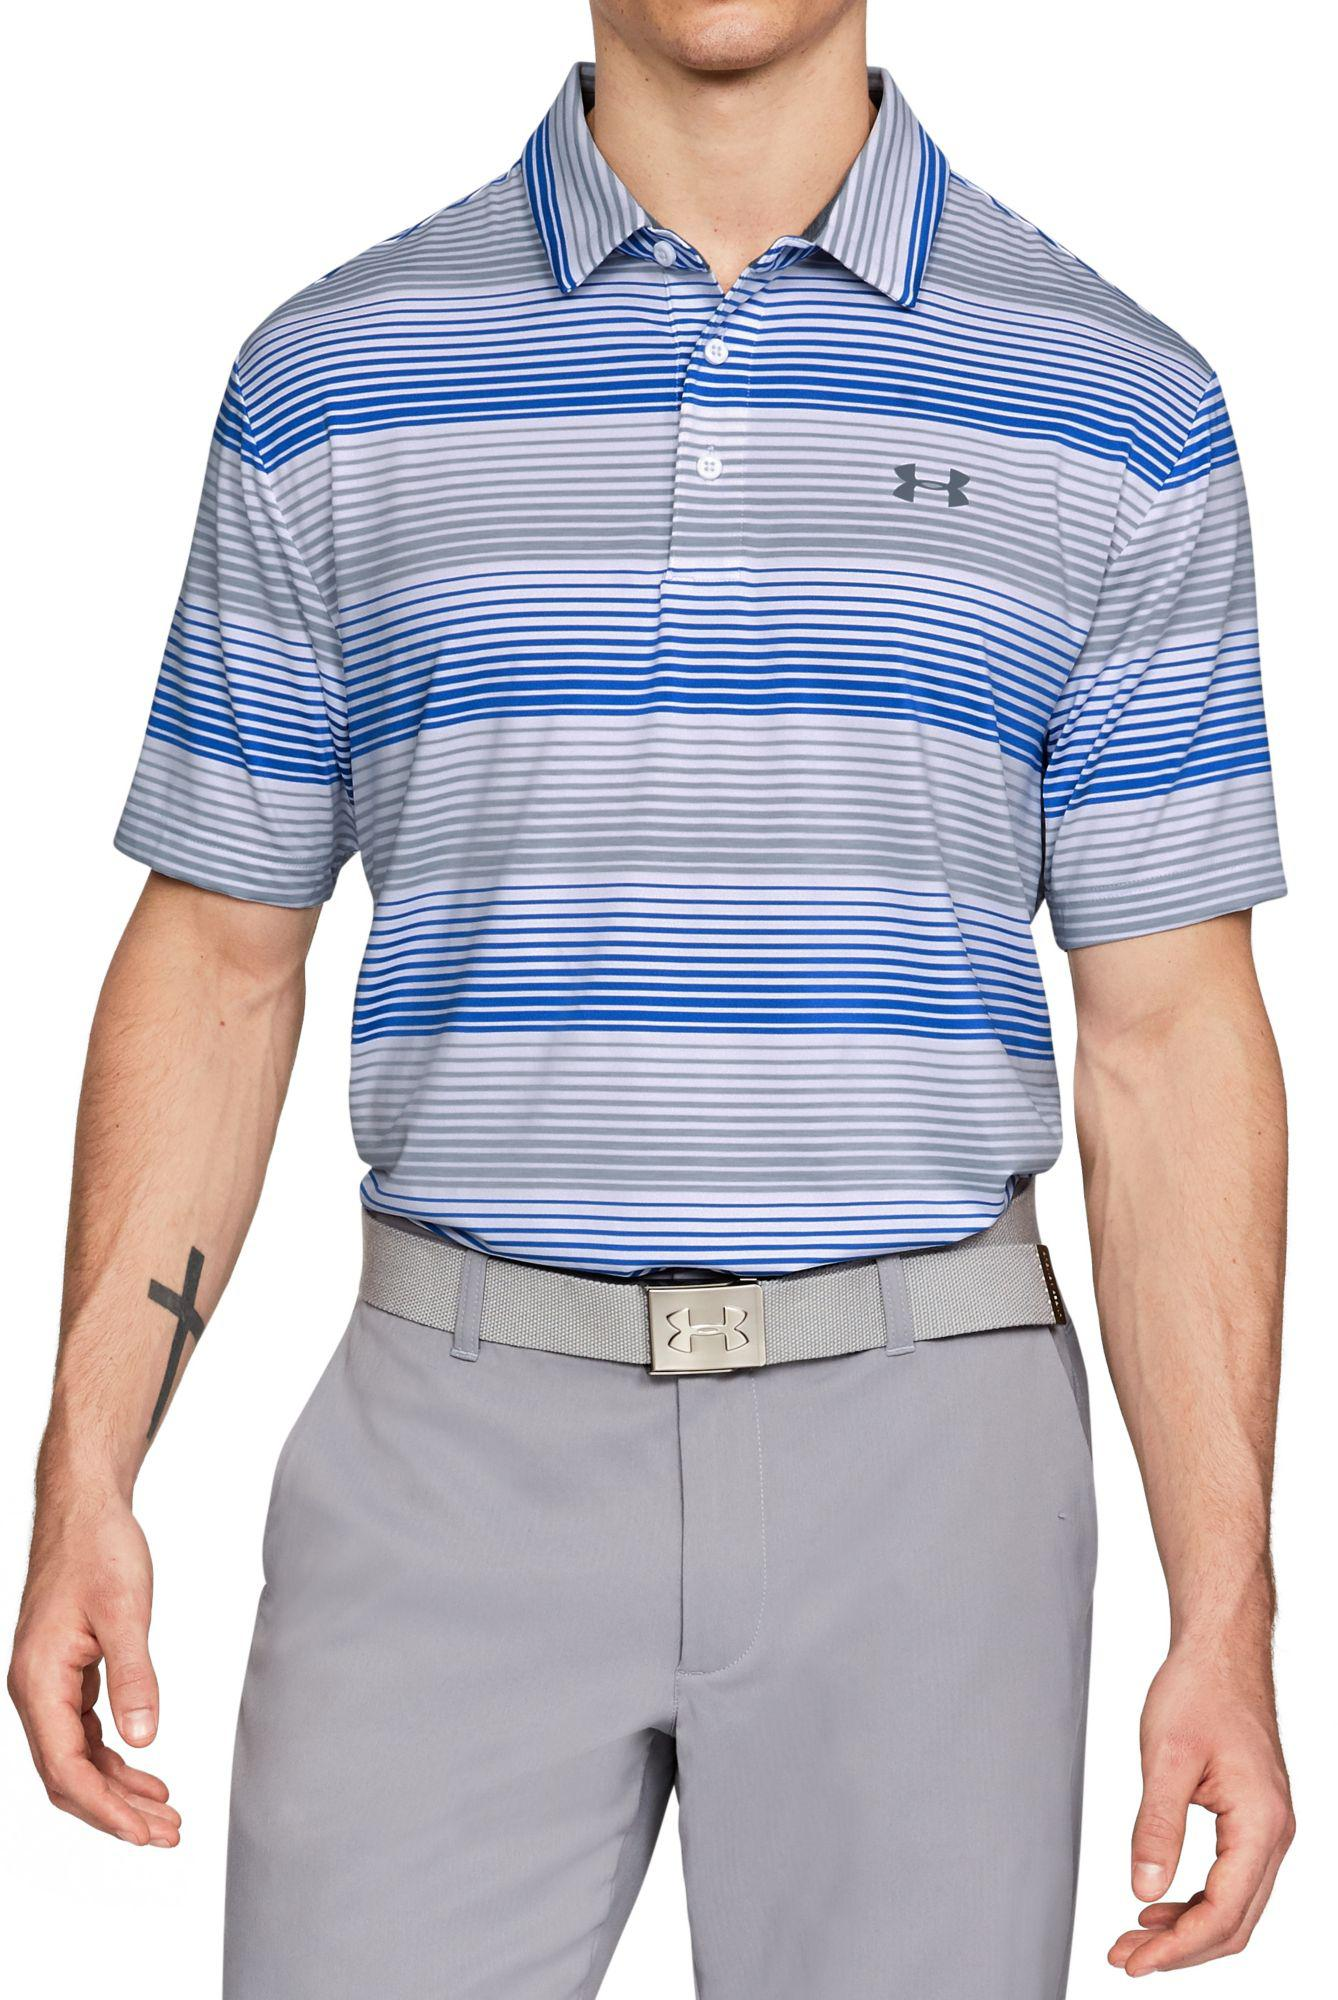 78fe3a3db0 Under Armour Playoff Blast Stripe Golf Polo in White for Men - Lyst